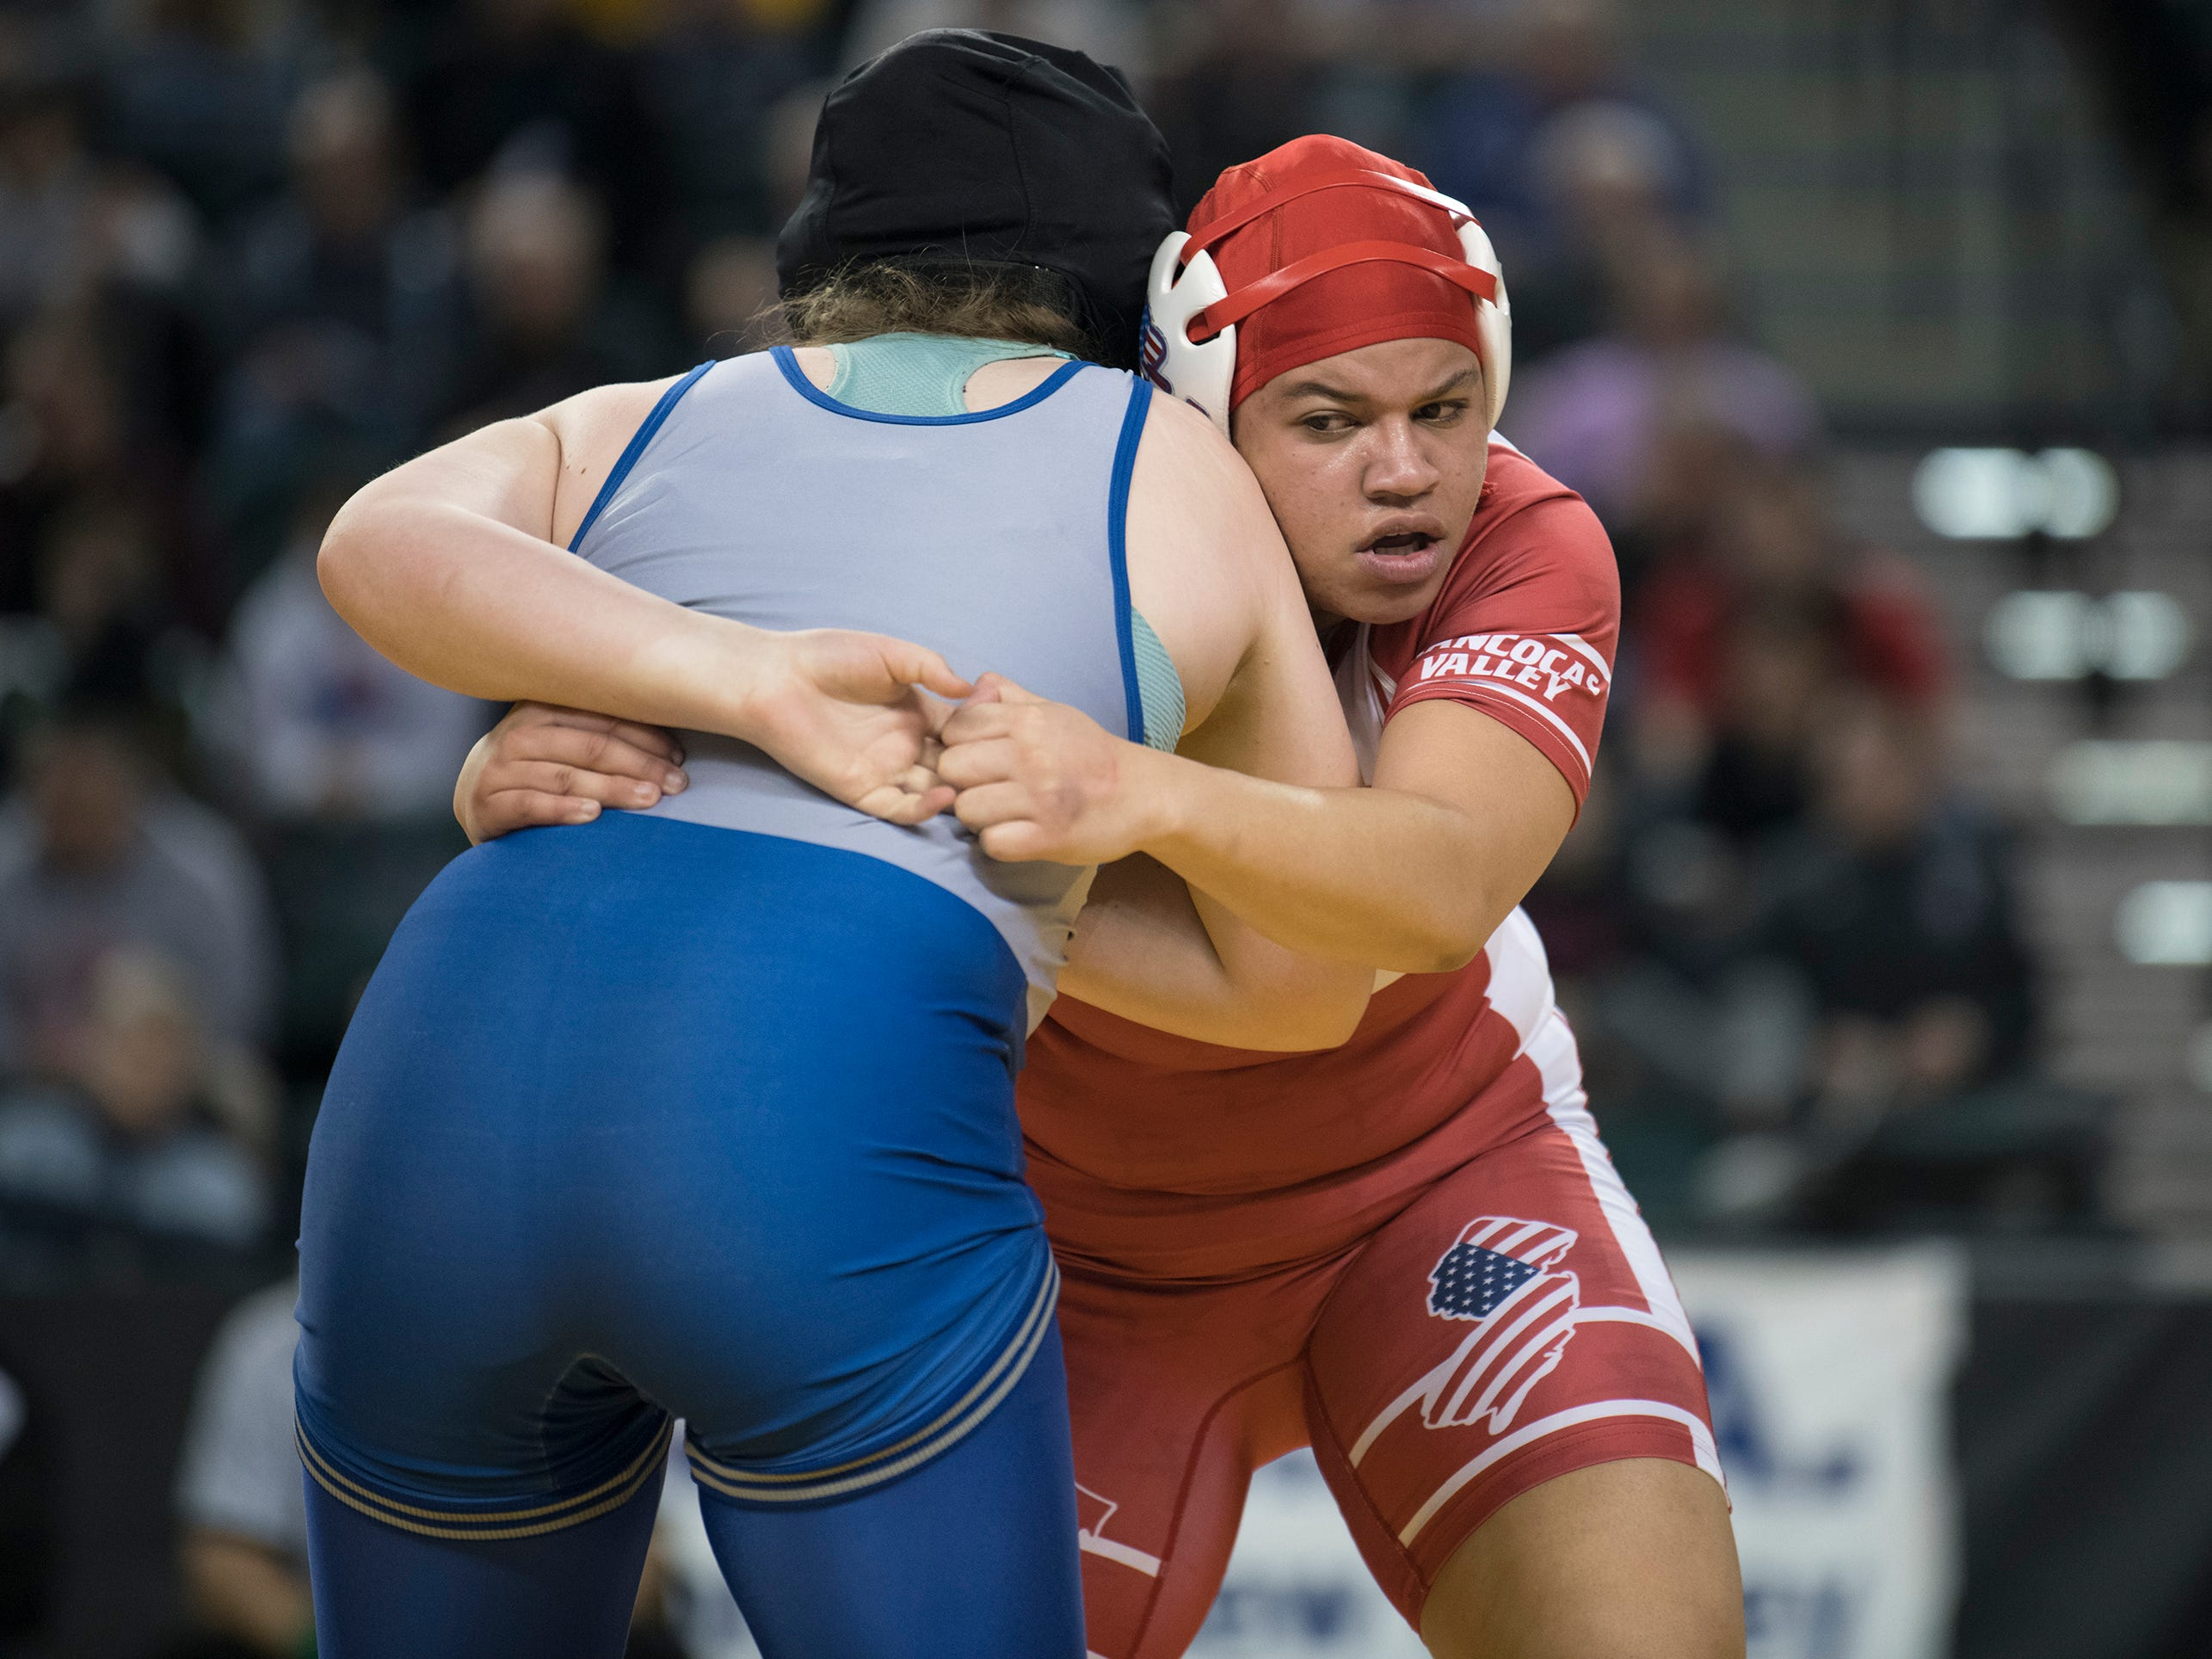 Rancocas Valley's Kaila Mungo, right, battles Kittatinny's Kiera Hubmaster for a take down during the 235 lb. championship bout of the 2019 NJSIAA Girls State Wrestling Championships tournament held at Boardwalk Hall in Atlantic City on Saturday, March 2, 2019.   Mungo defeated Hubmaster, 2-1.